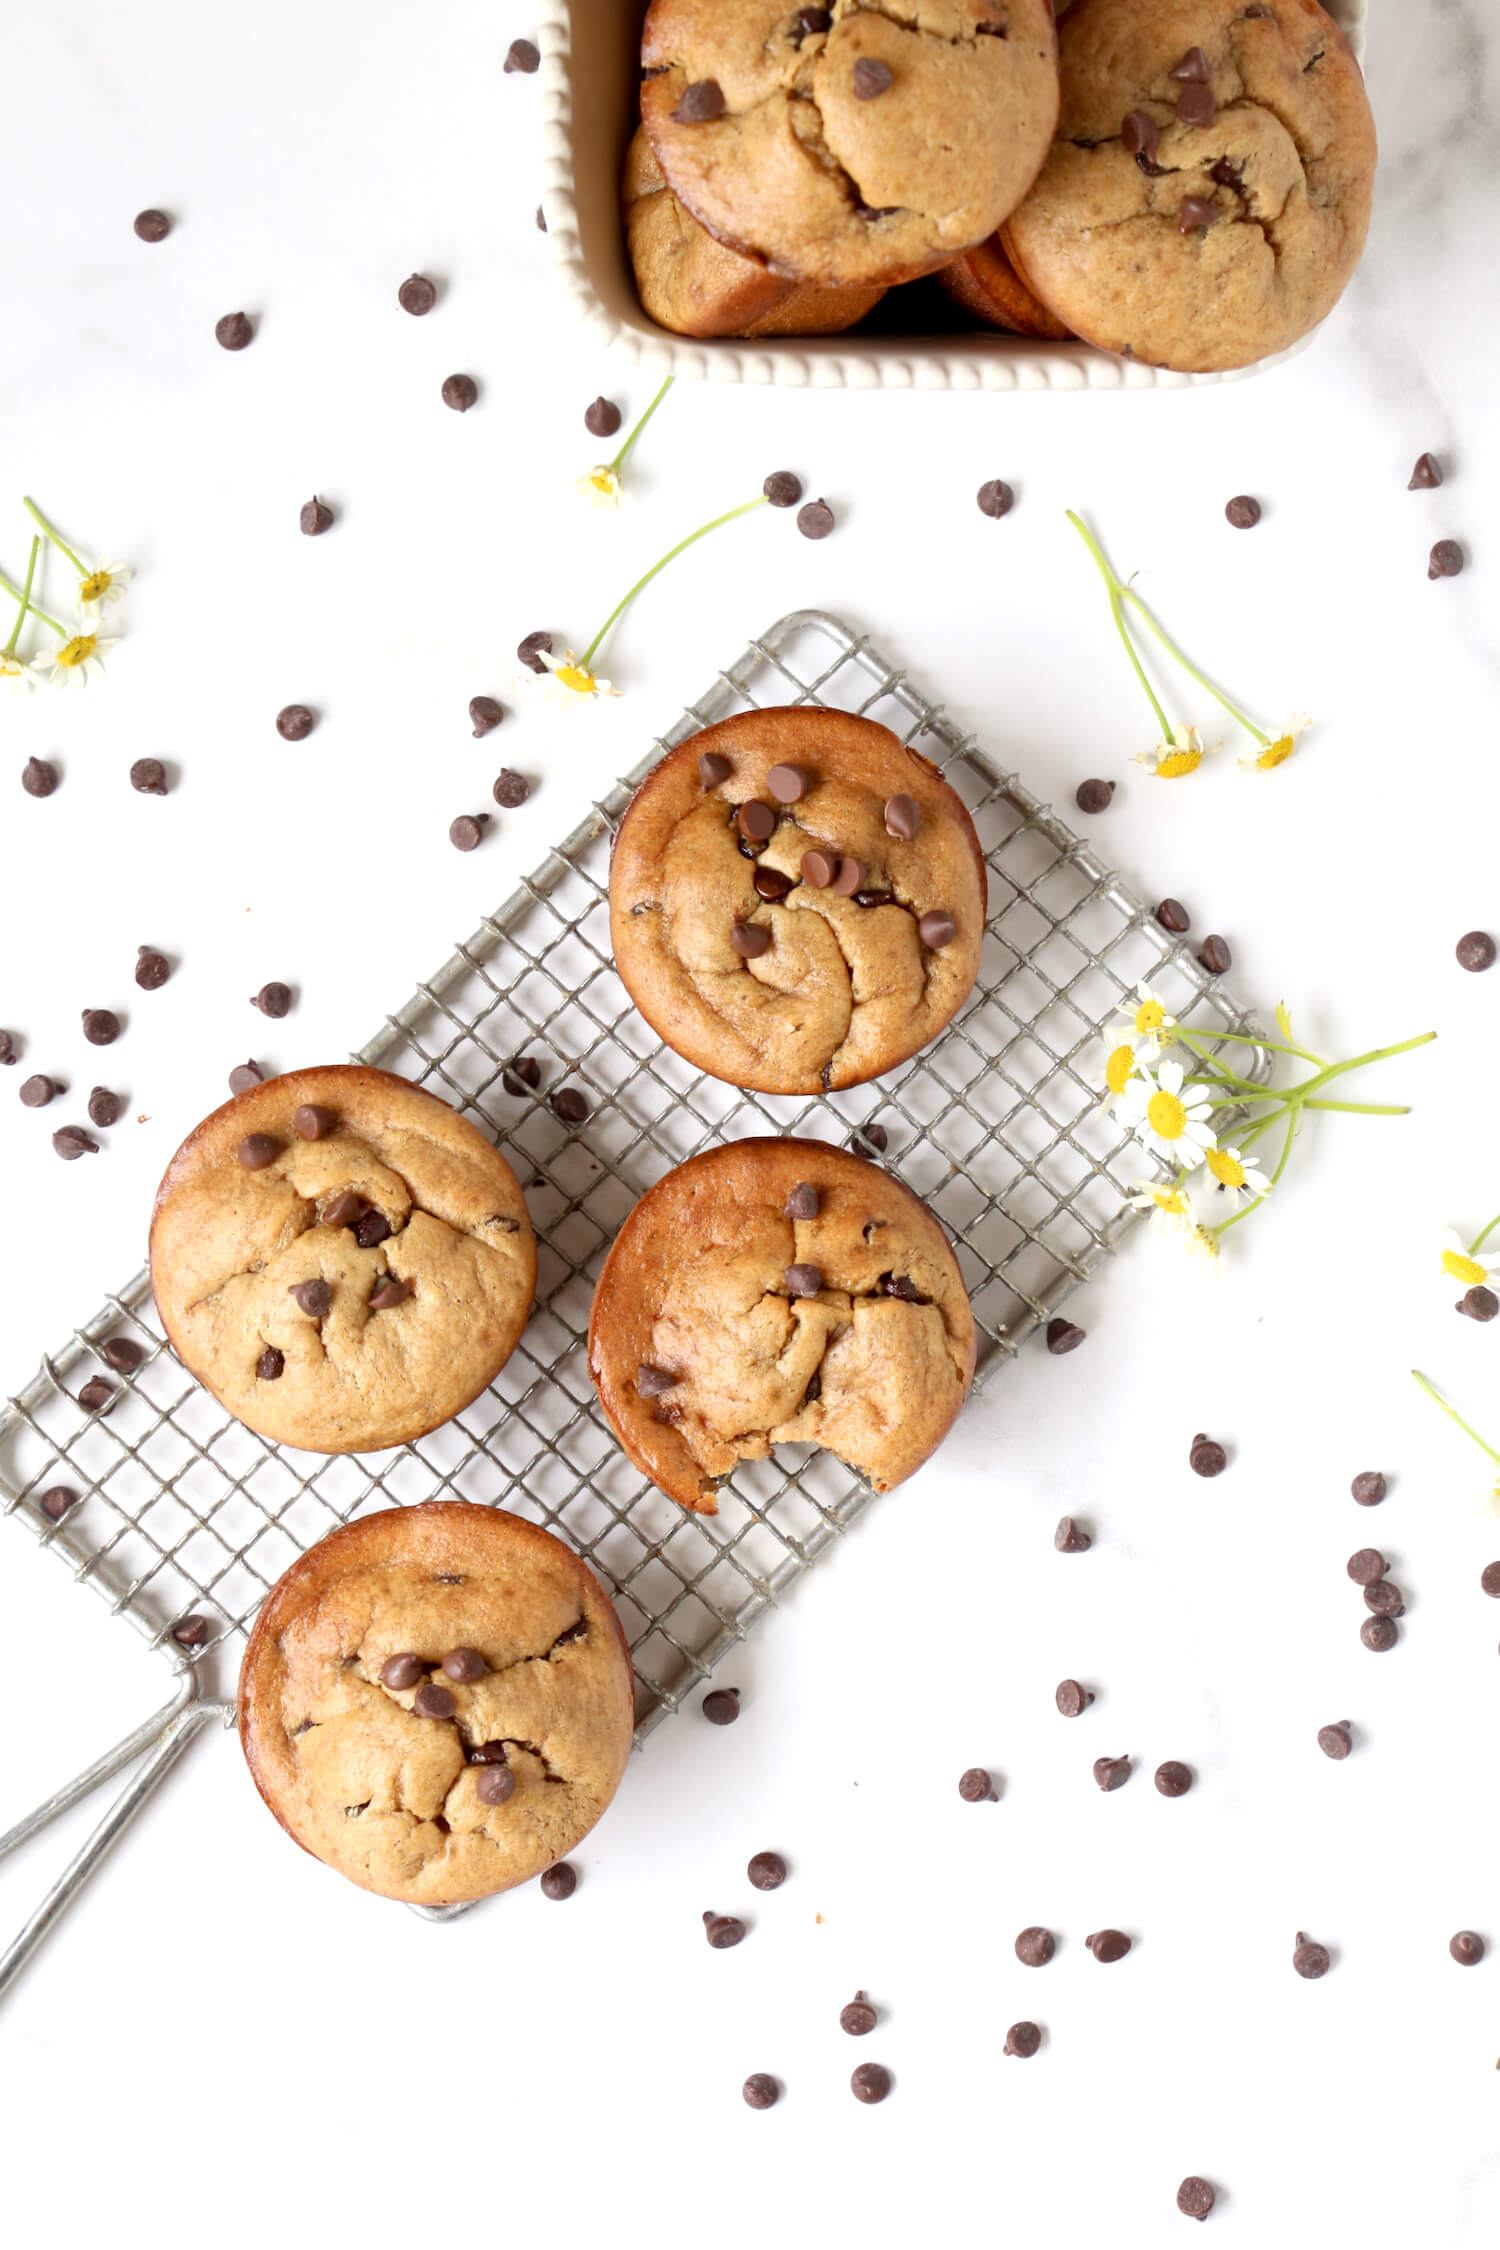 A cooling rack with muffins on top and chocolate chips sprinkled around.